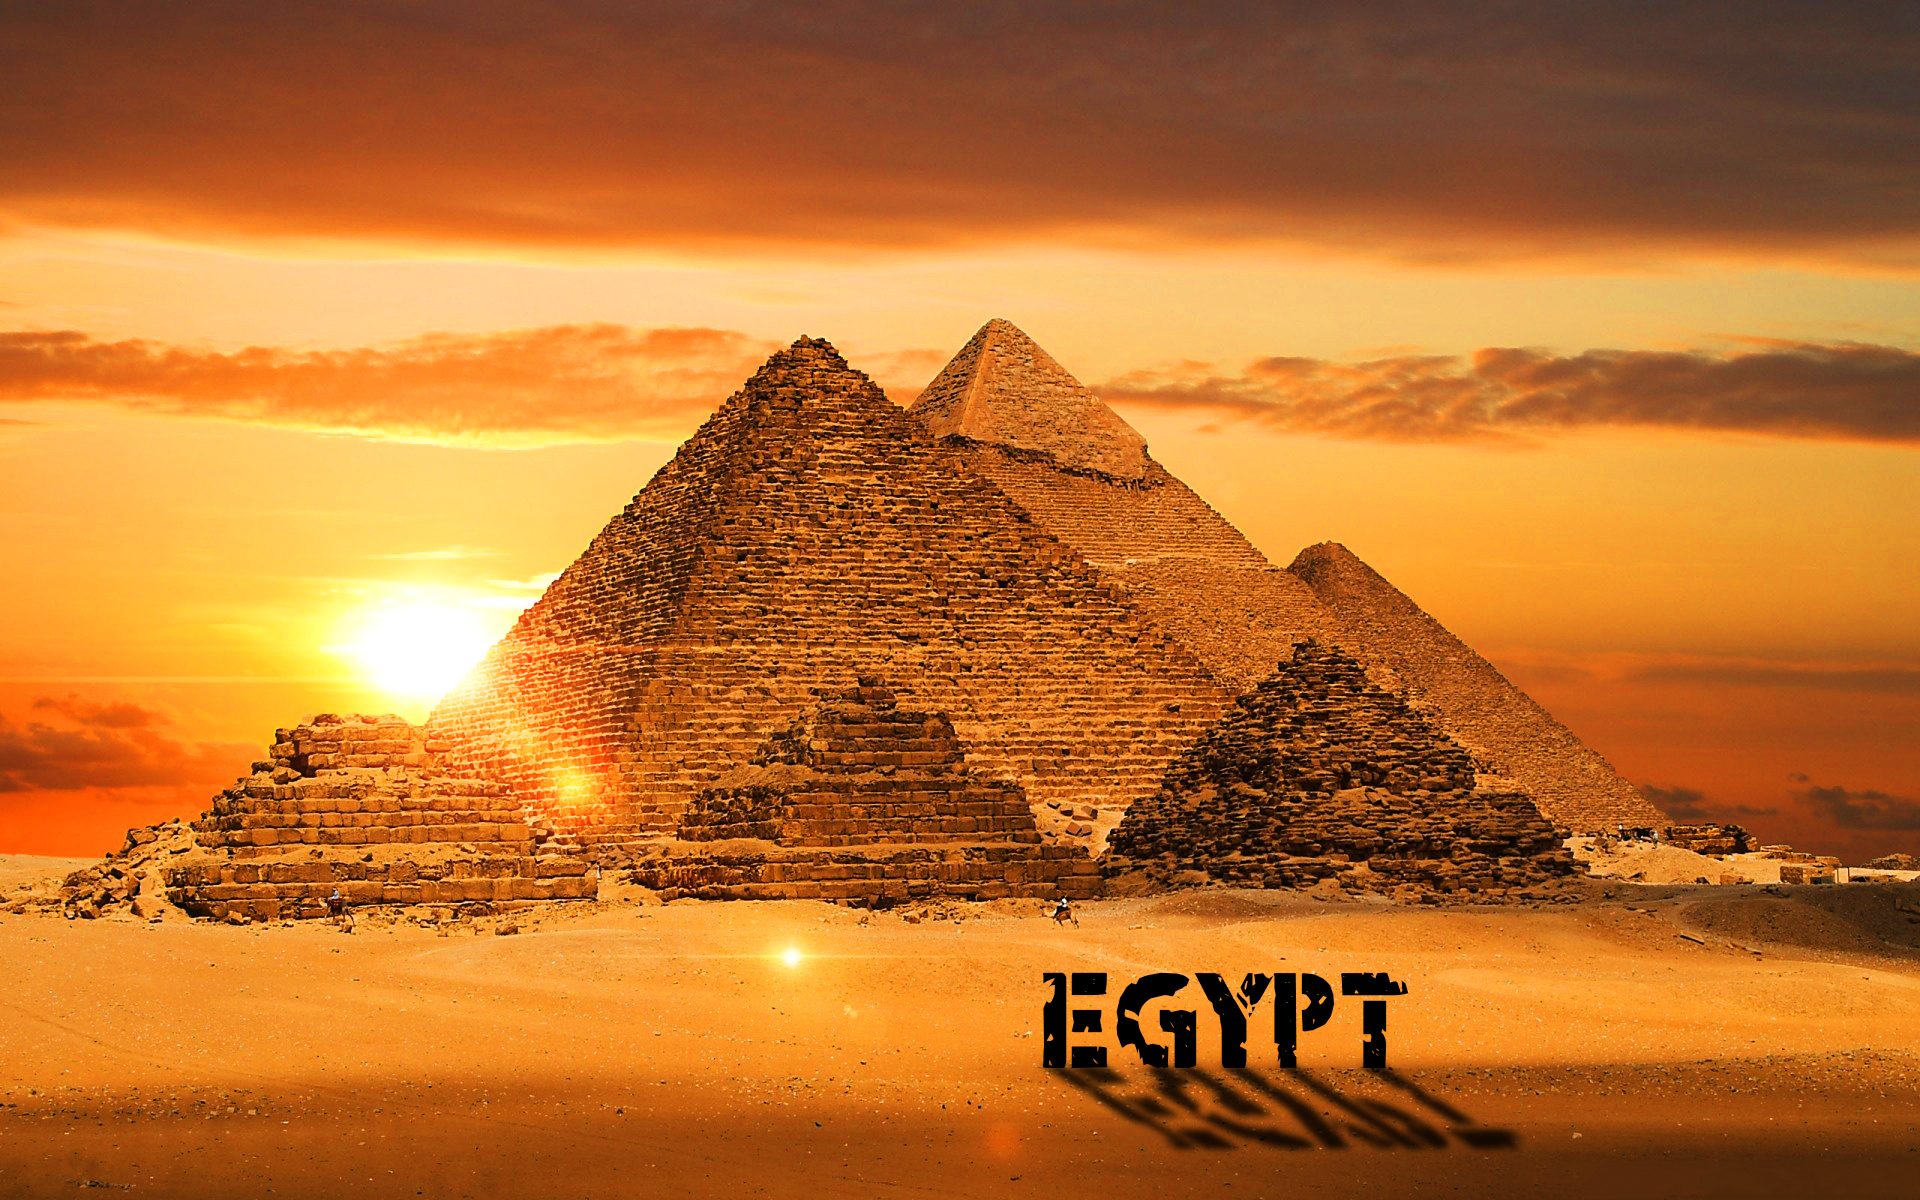 Sunset over Pyramids in Egypt 1698.98 Kb